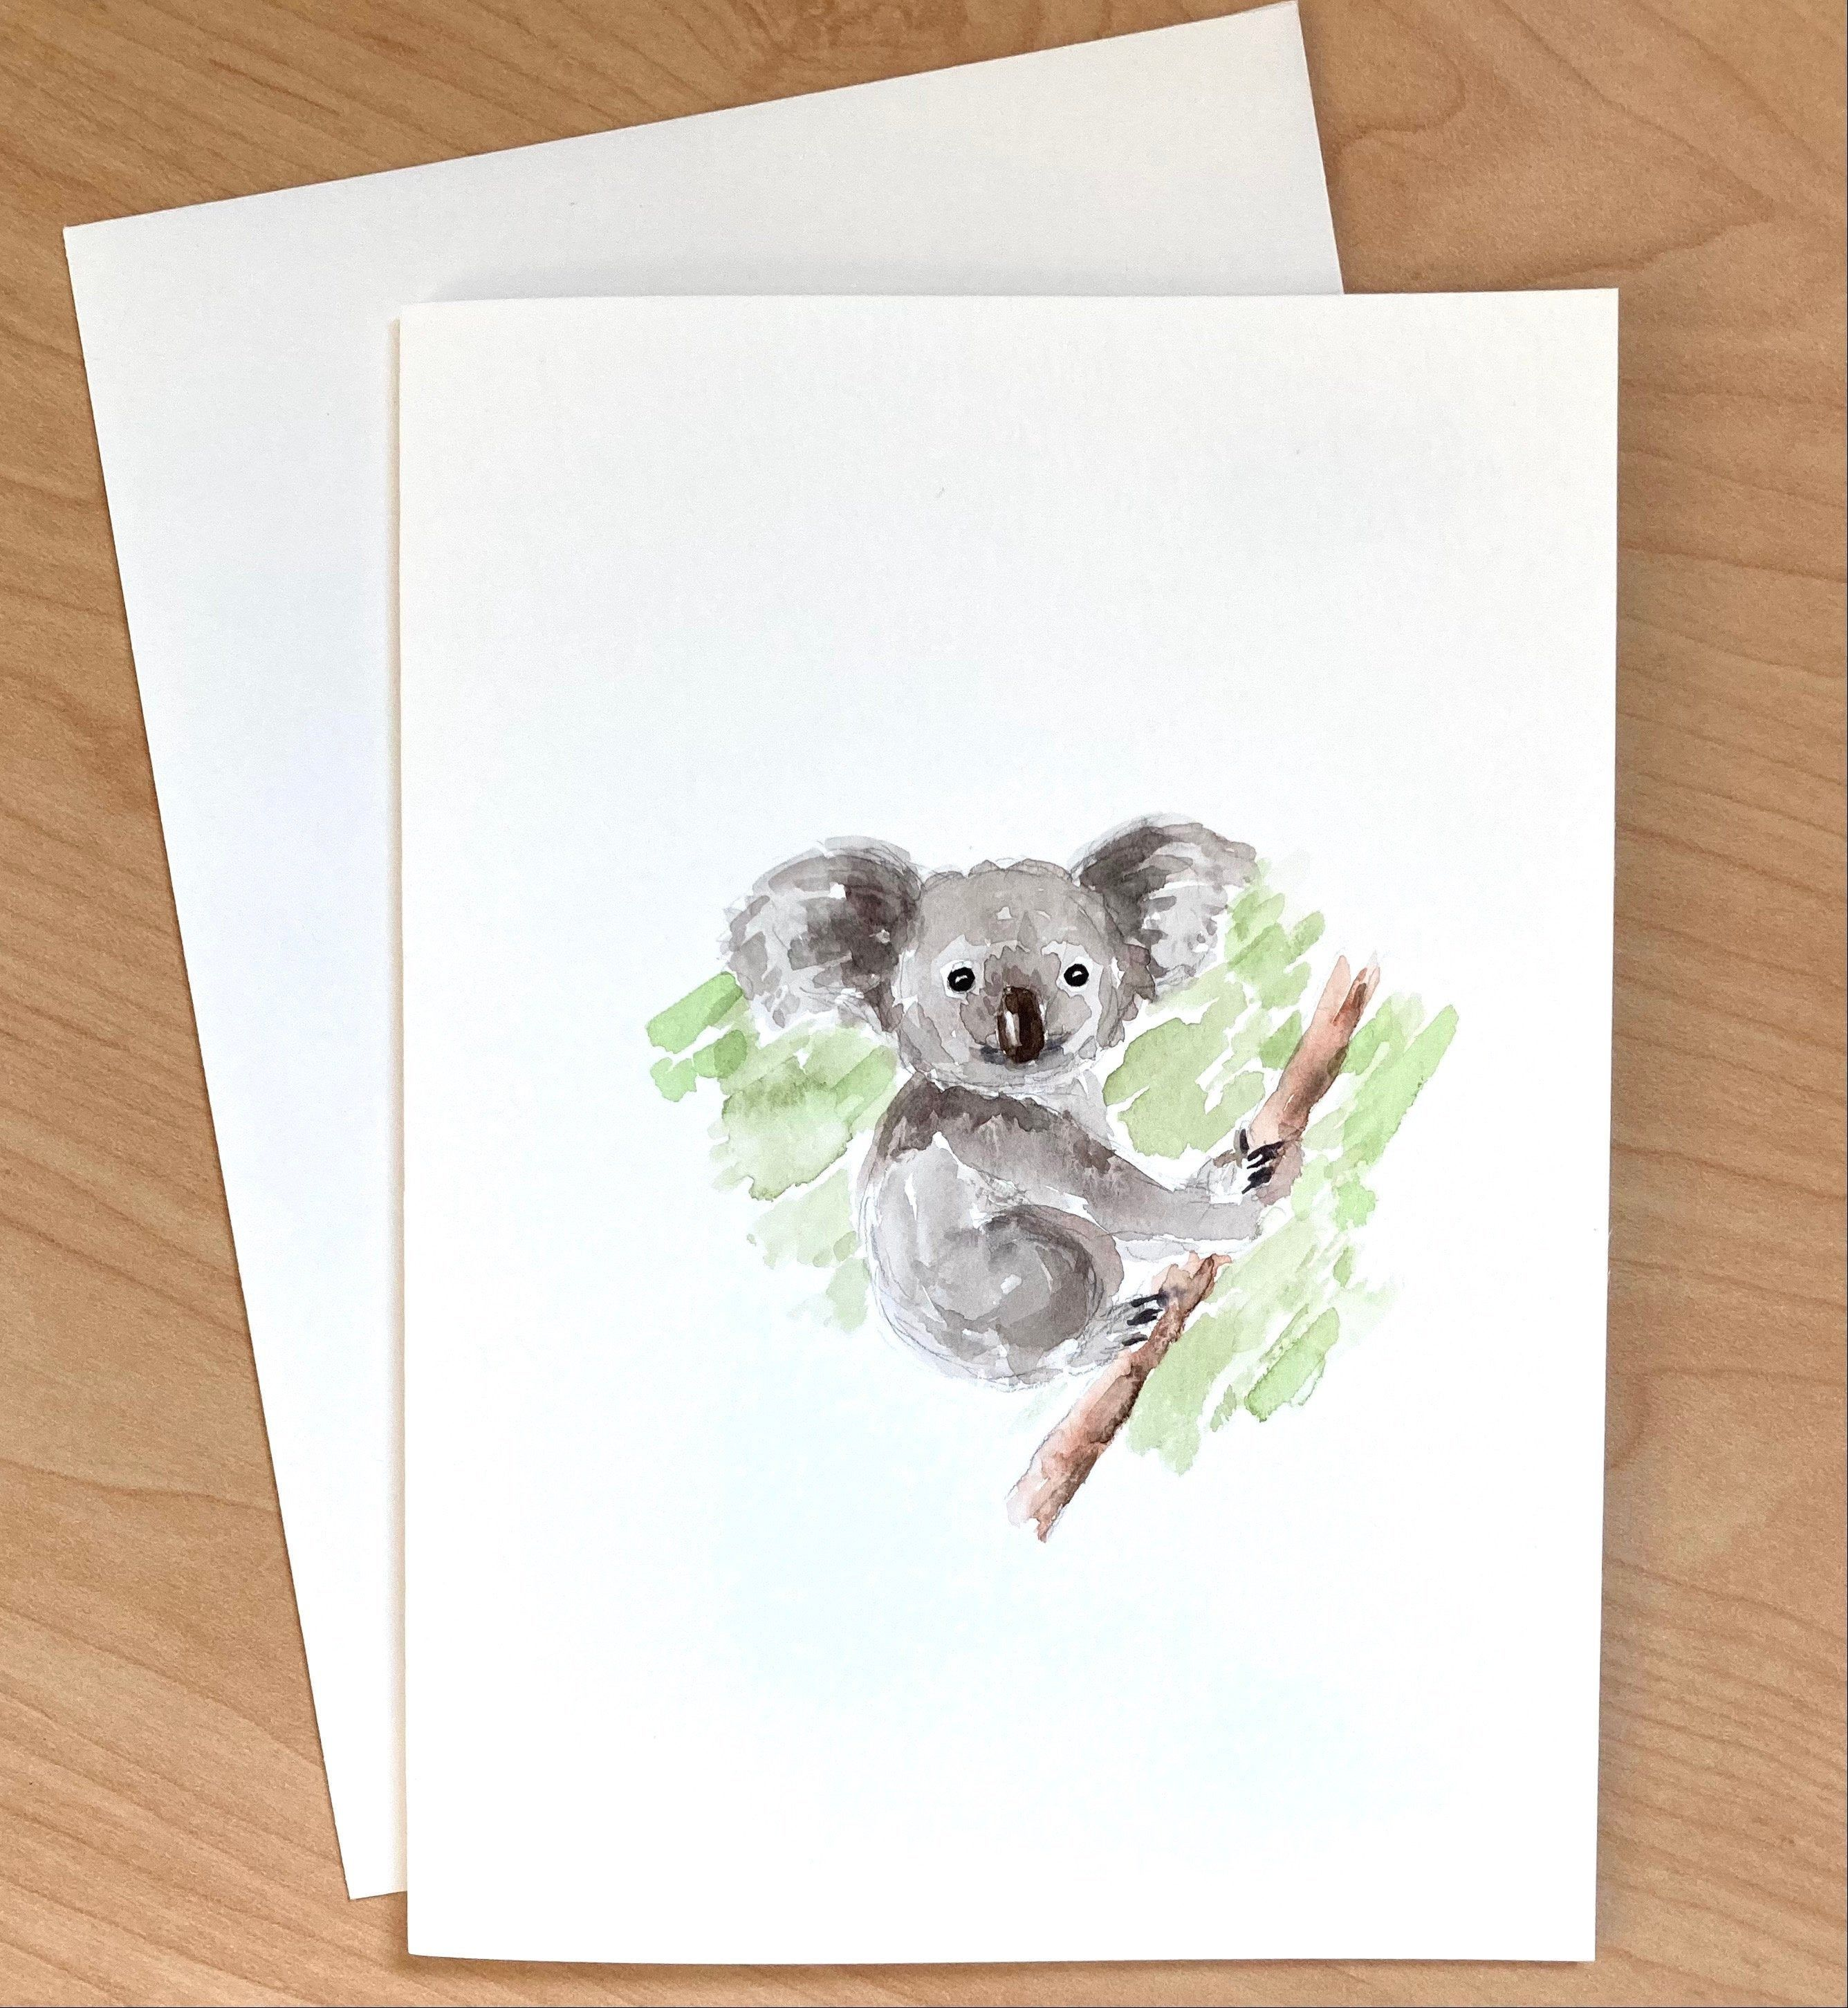 Hand Painted Greeting Card Not Print Koala Card Original Etsy In 2021 Paint Cards Watercolor Cards Cards Handmade